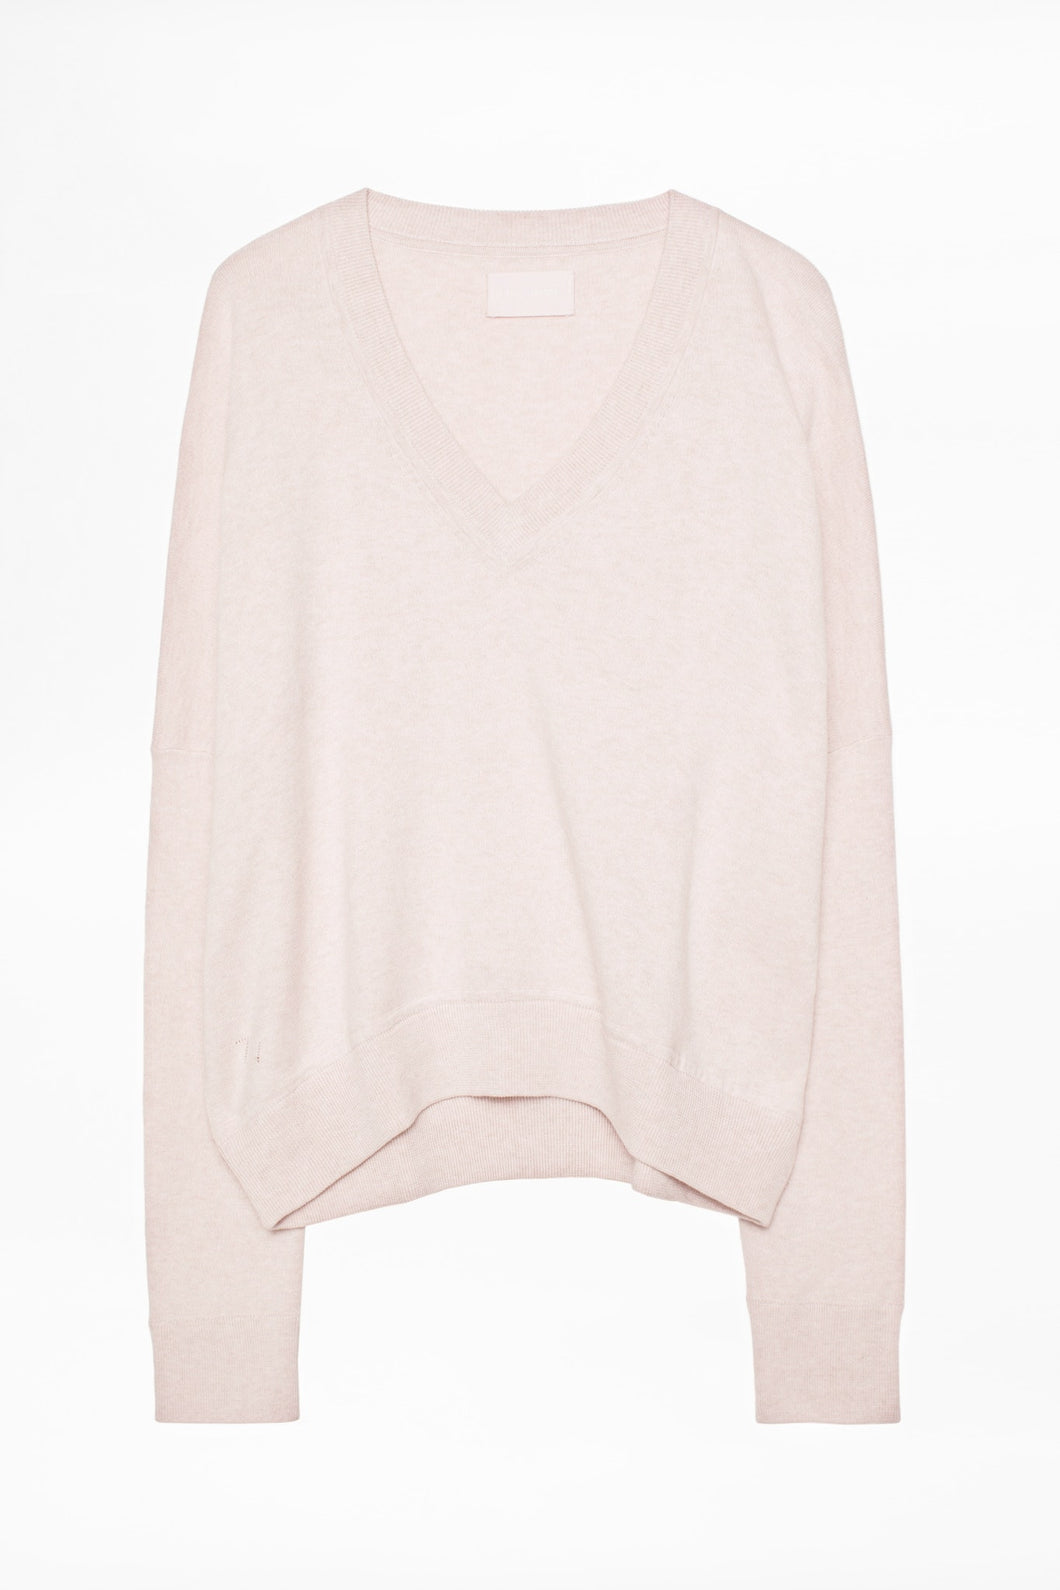 Zadig & Voltaire - Brumy Cotton Sweater